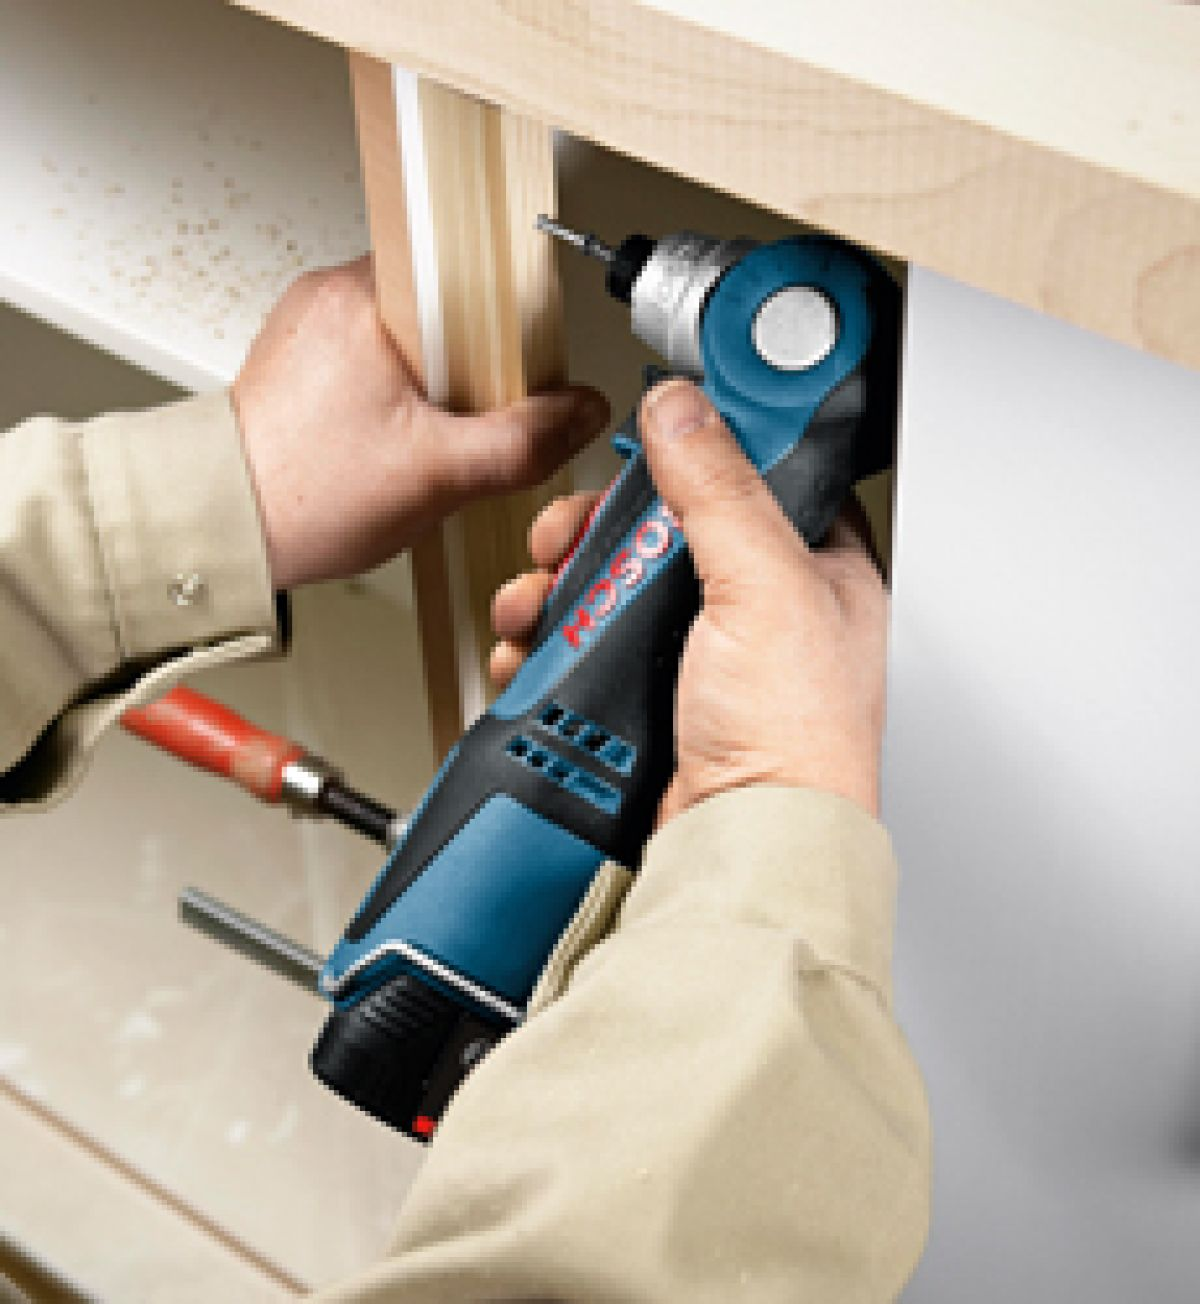 Bosch Cordless Right Angle Drill application